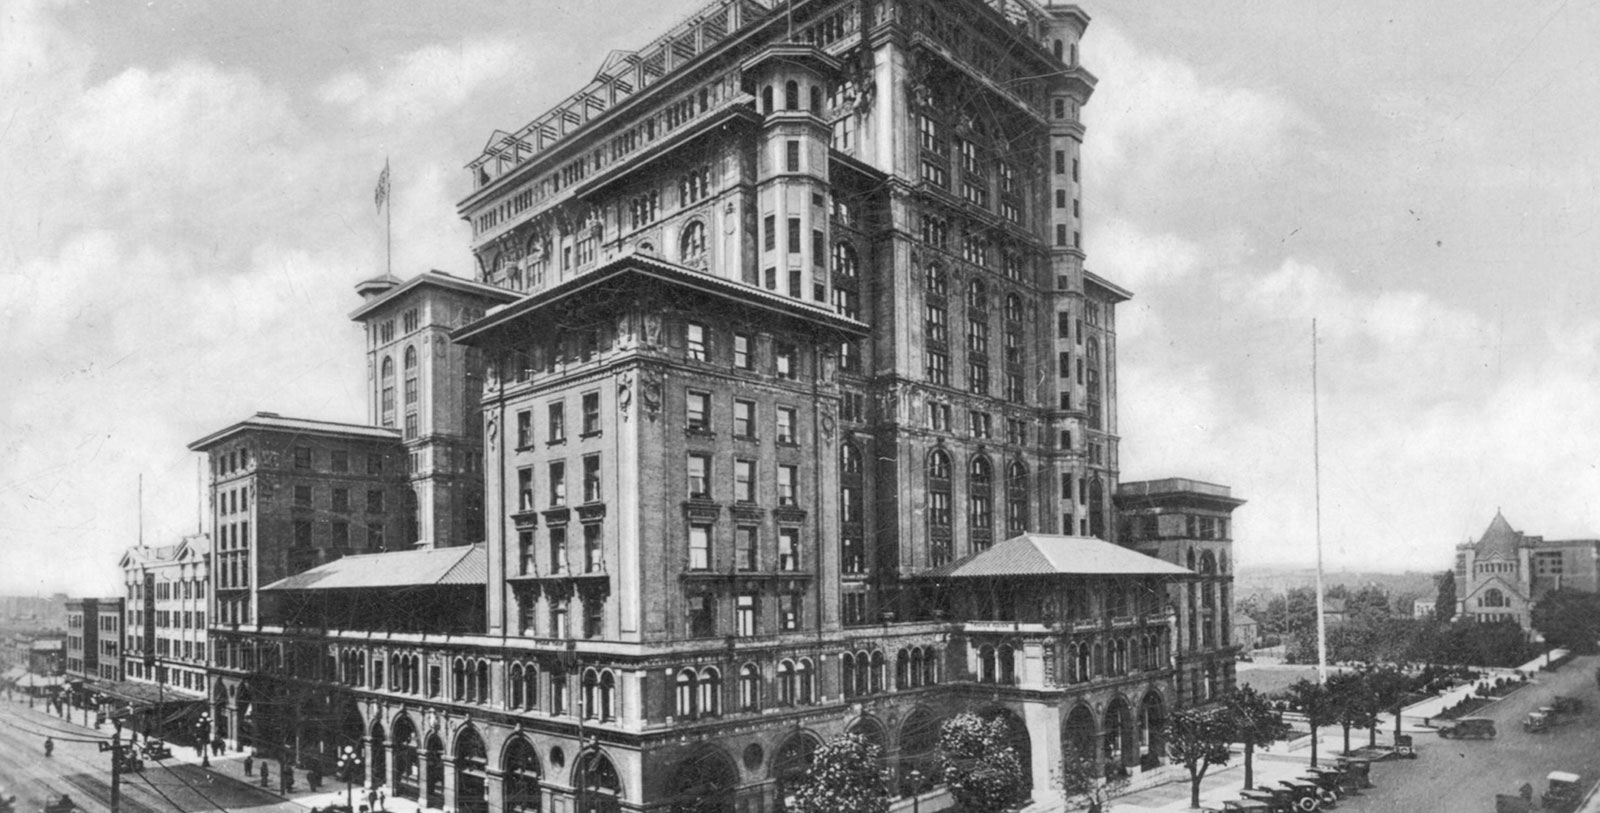 Image of people outside hotel, Fairmont Hotel Vancouver, 1939, Member of Historic Hotels Worldwide, Vancouver, British Columbia, Canada, Ghost Story